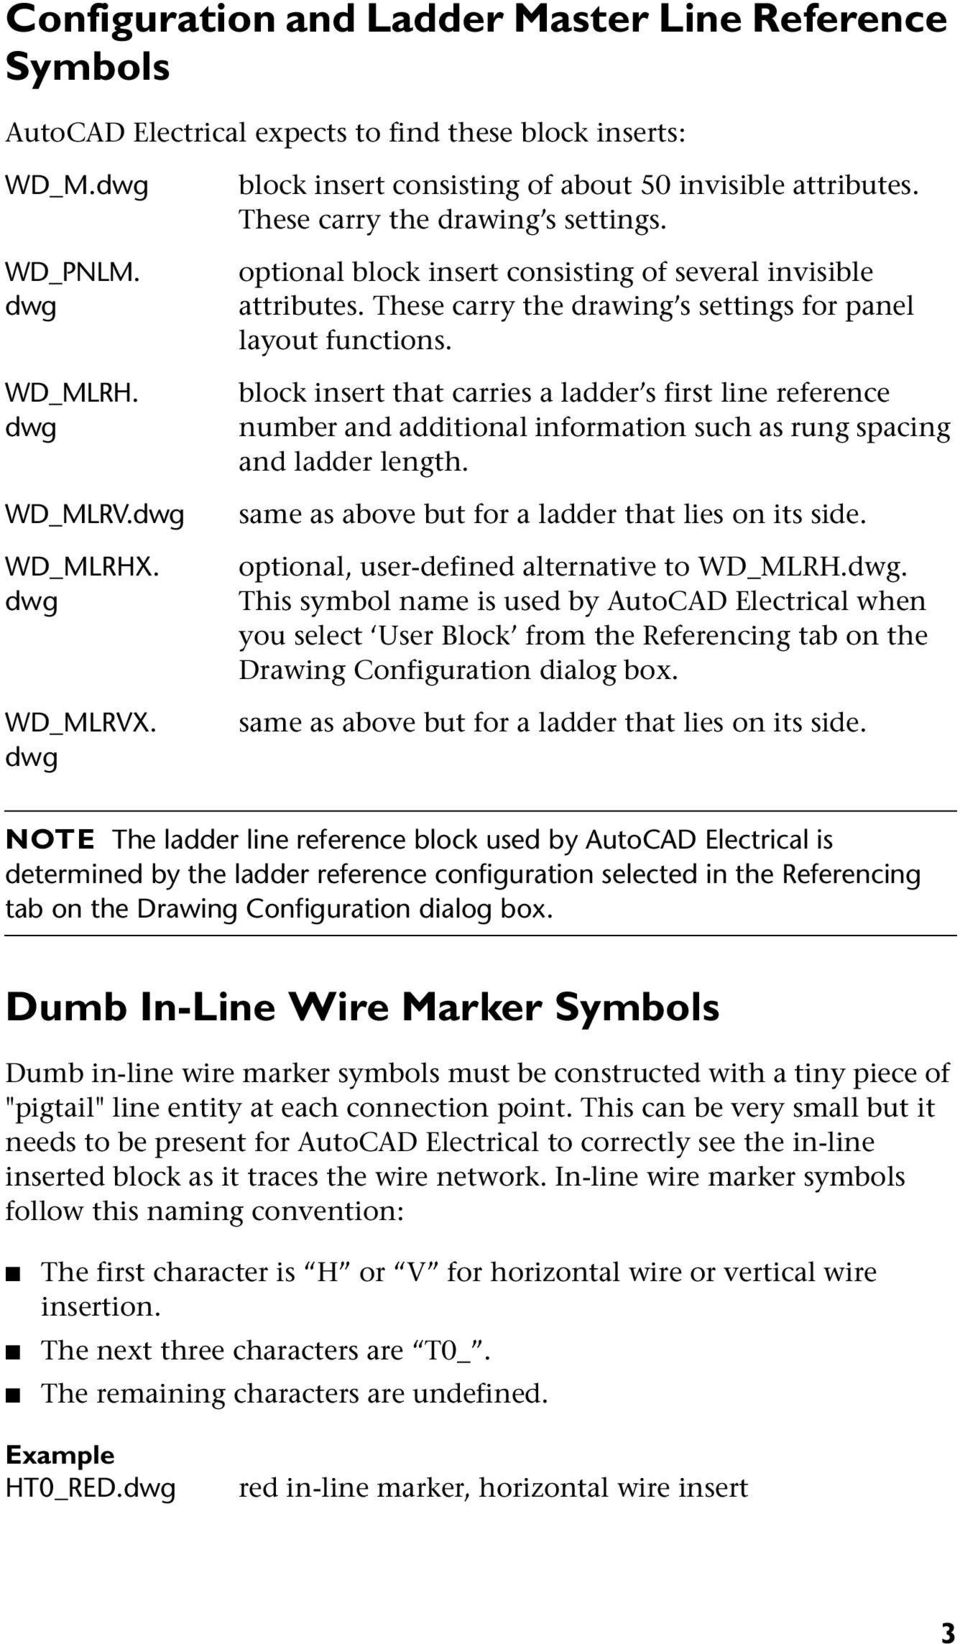 Autocad Electrical Symbol Libraries Pdf Example Function Block Network Diagrams These Carry The Drawing S Settings For Panel Layout Functions Insert That Carries A